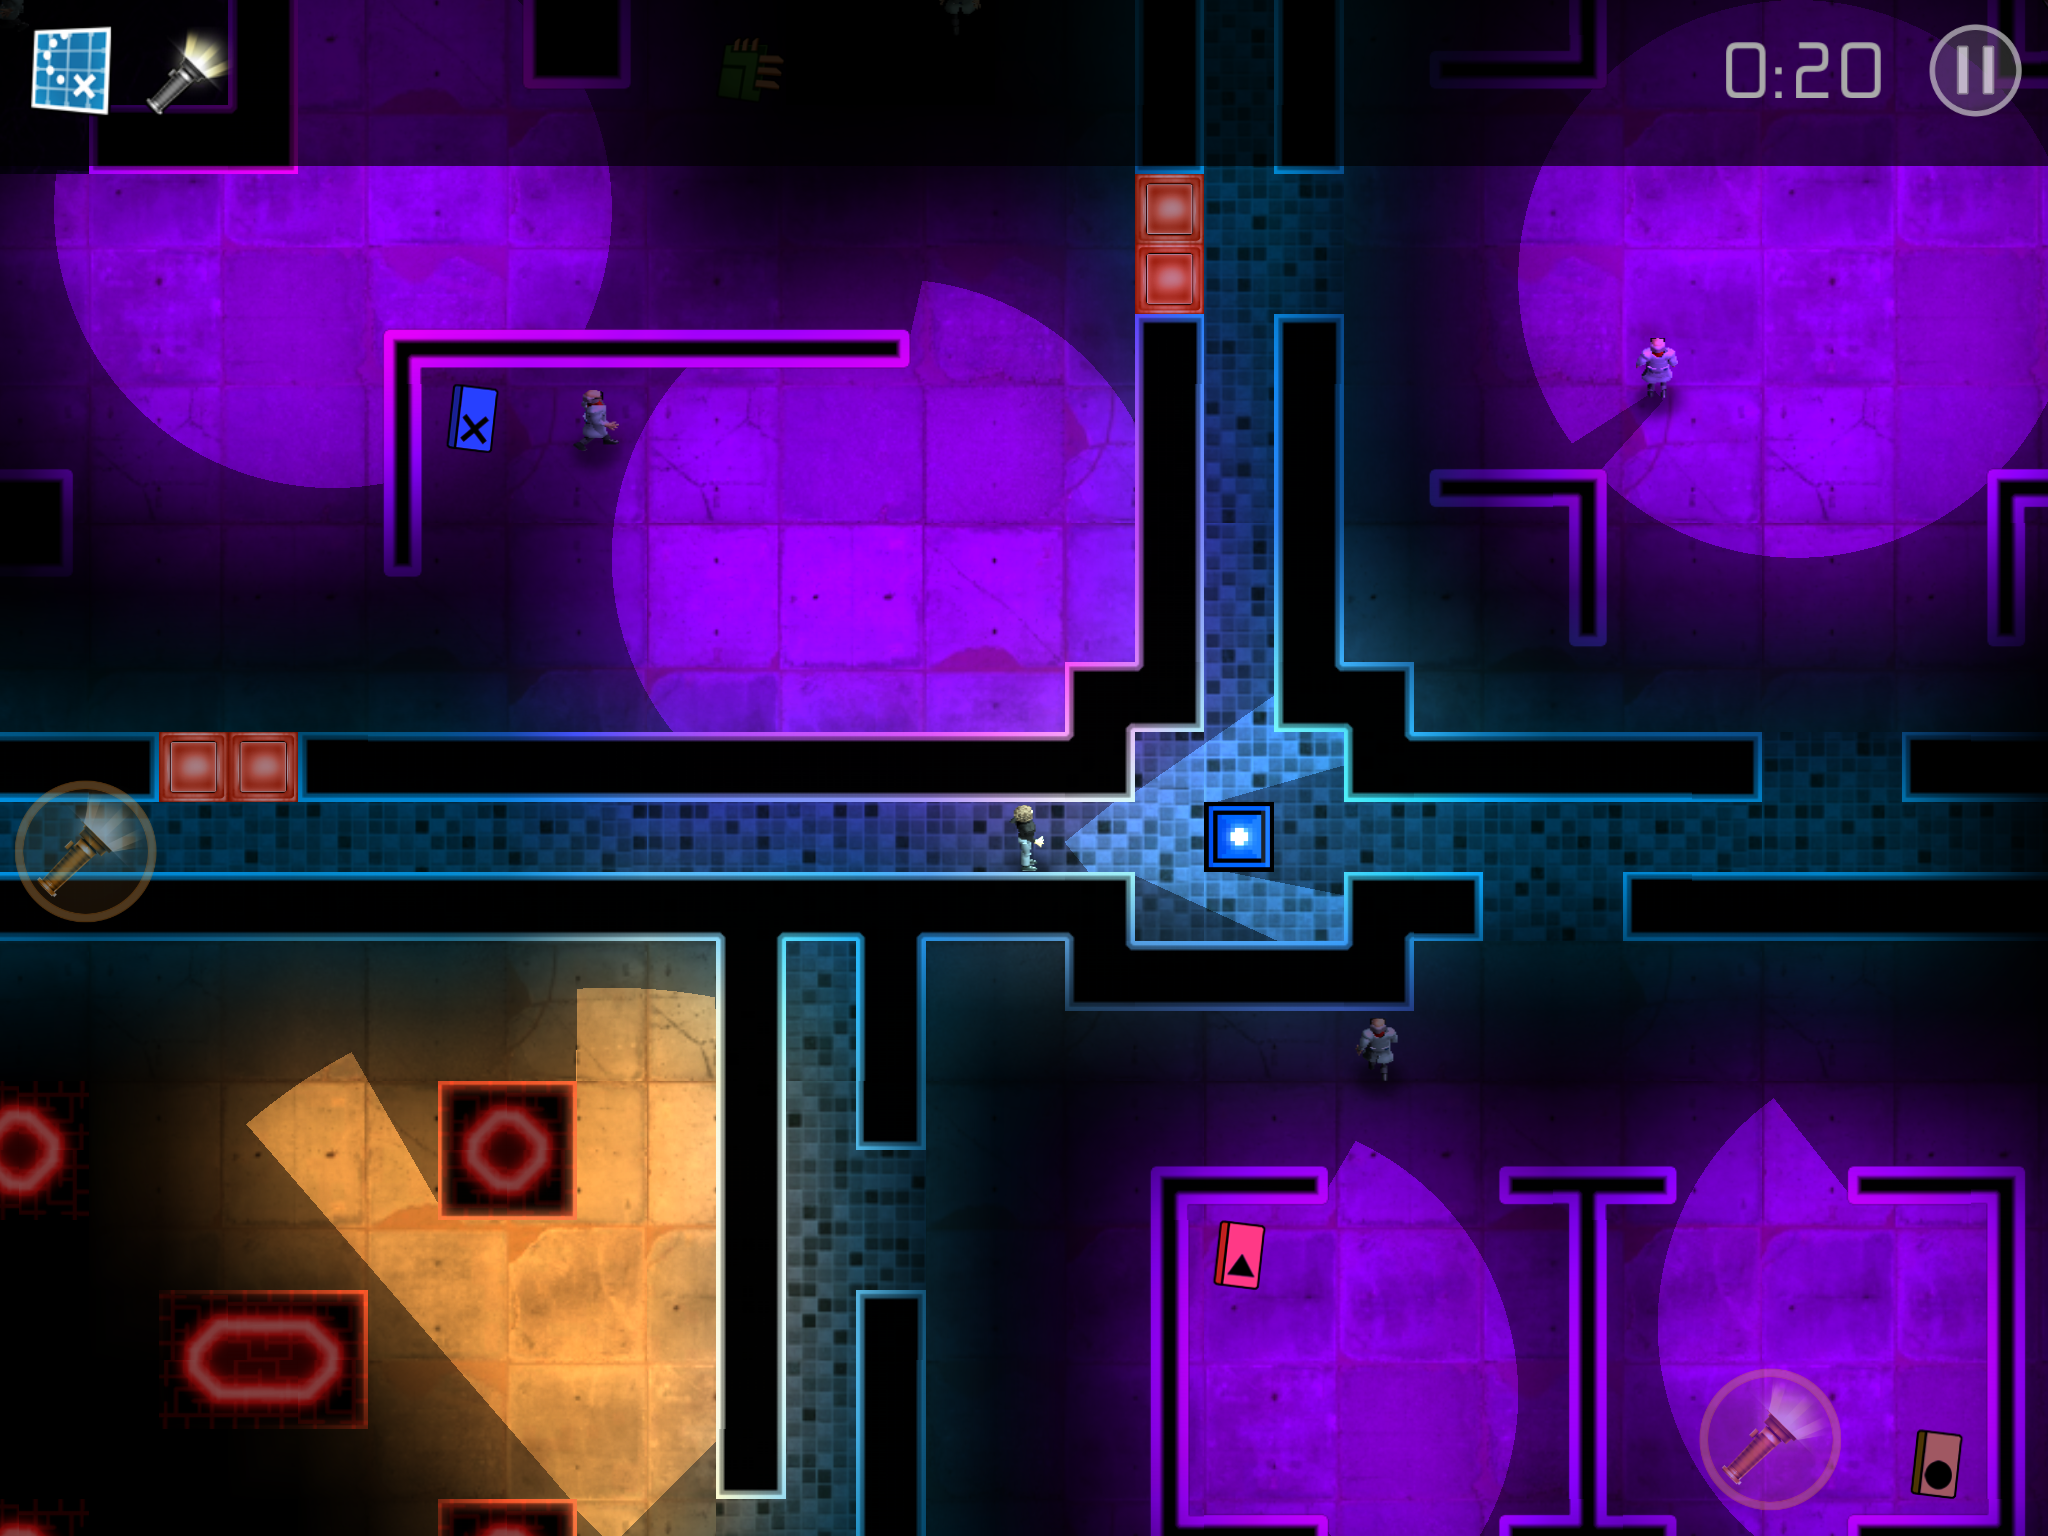 Phil Hassey's explosive stealth game Dynamite Jack sneaking onto iPad on June 28th